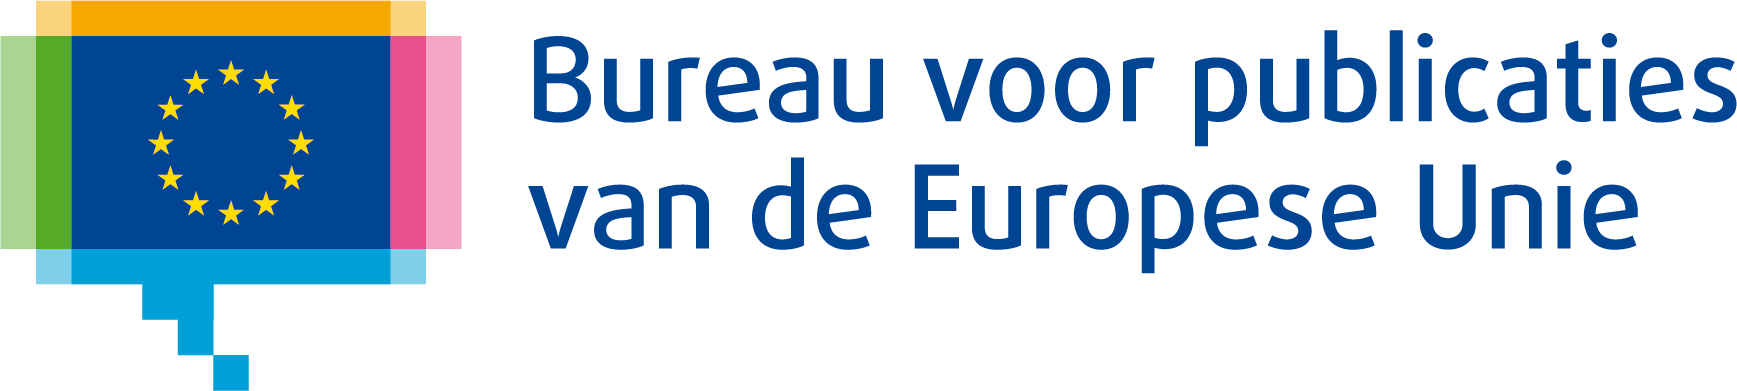 Photo of Publicatiebureau van de Europese Unie